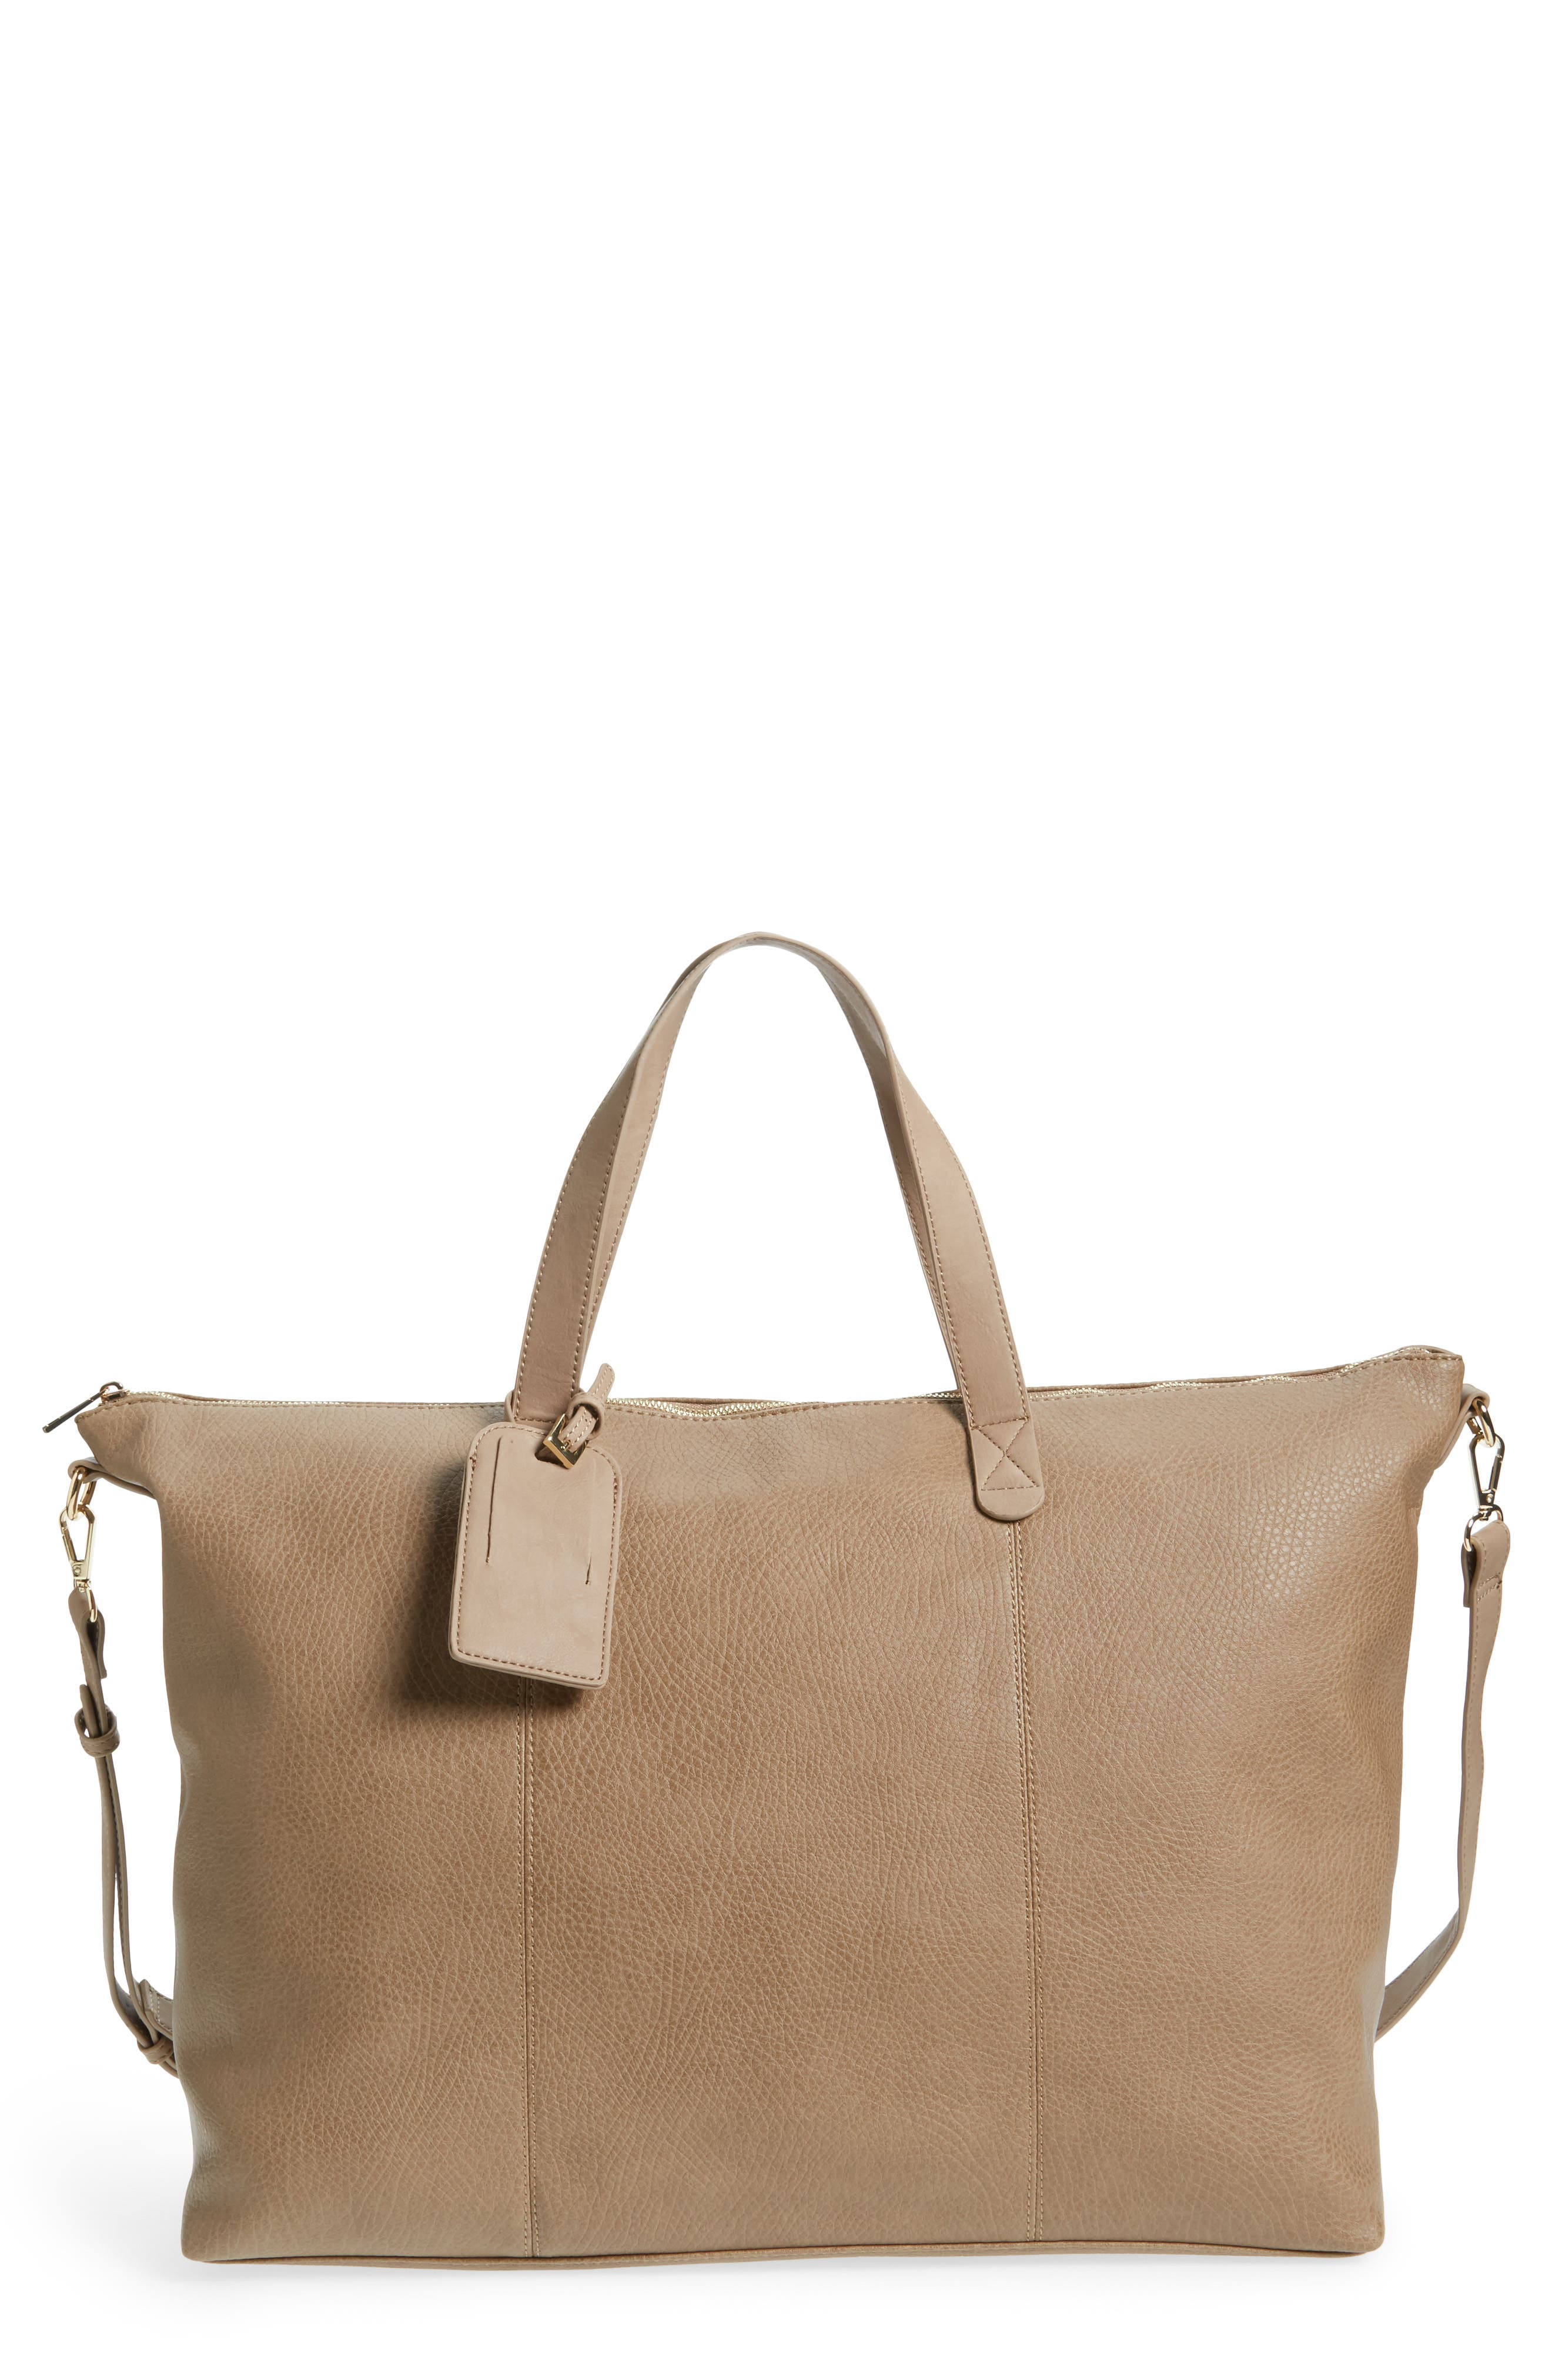 SOLE SOCIETY Candice Oversize Travel Tote